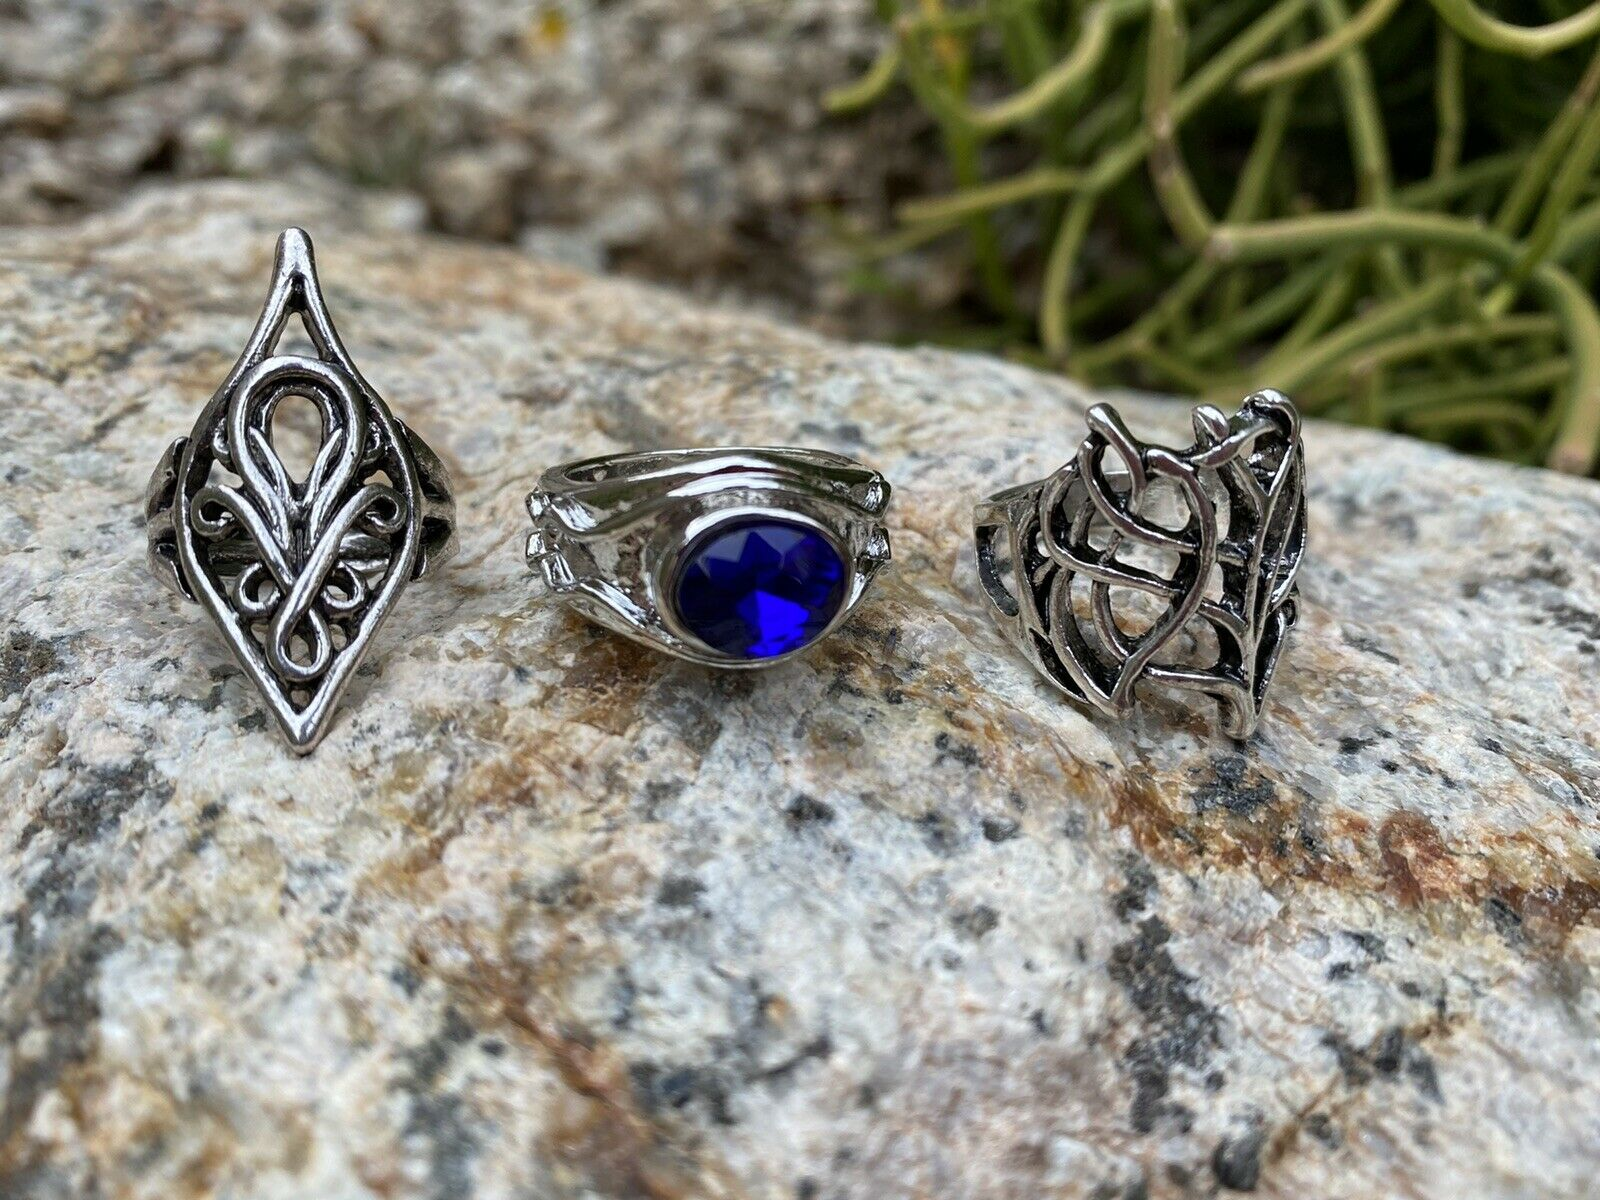 Lot of 2 Dwarf Rings Thorin Lord of the Rings Hobbit Combo LOTR